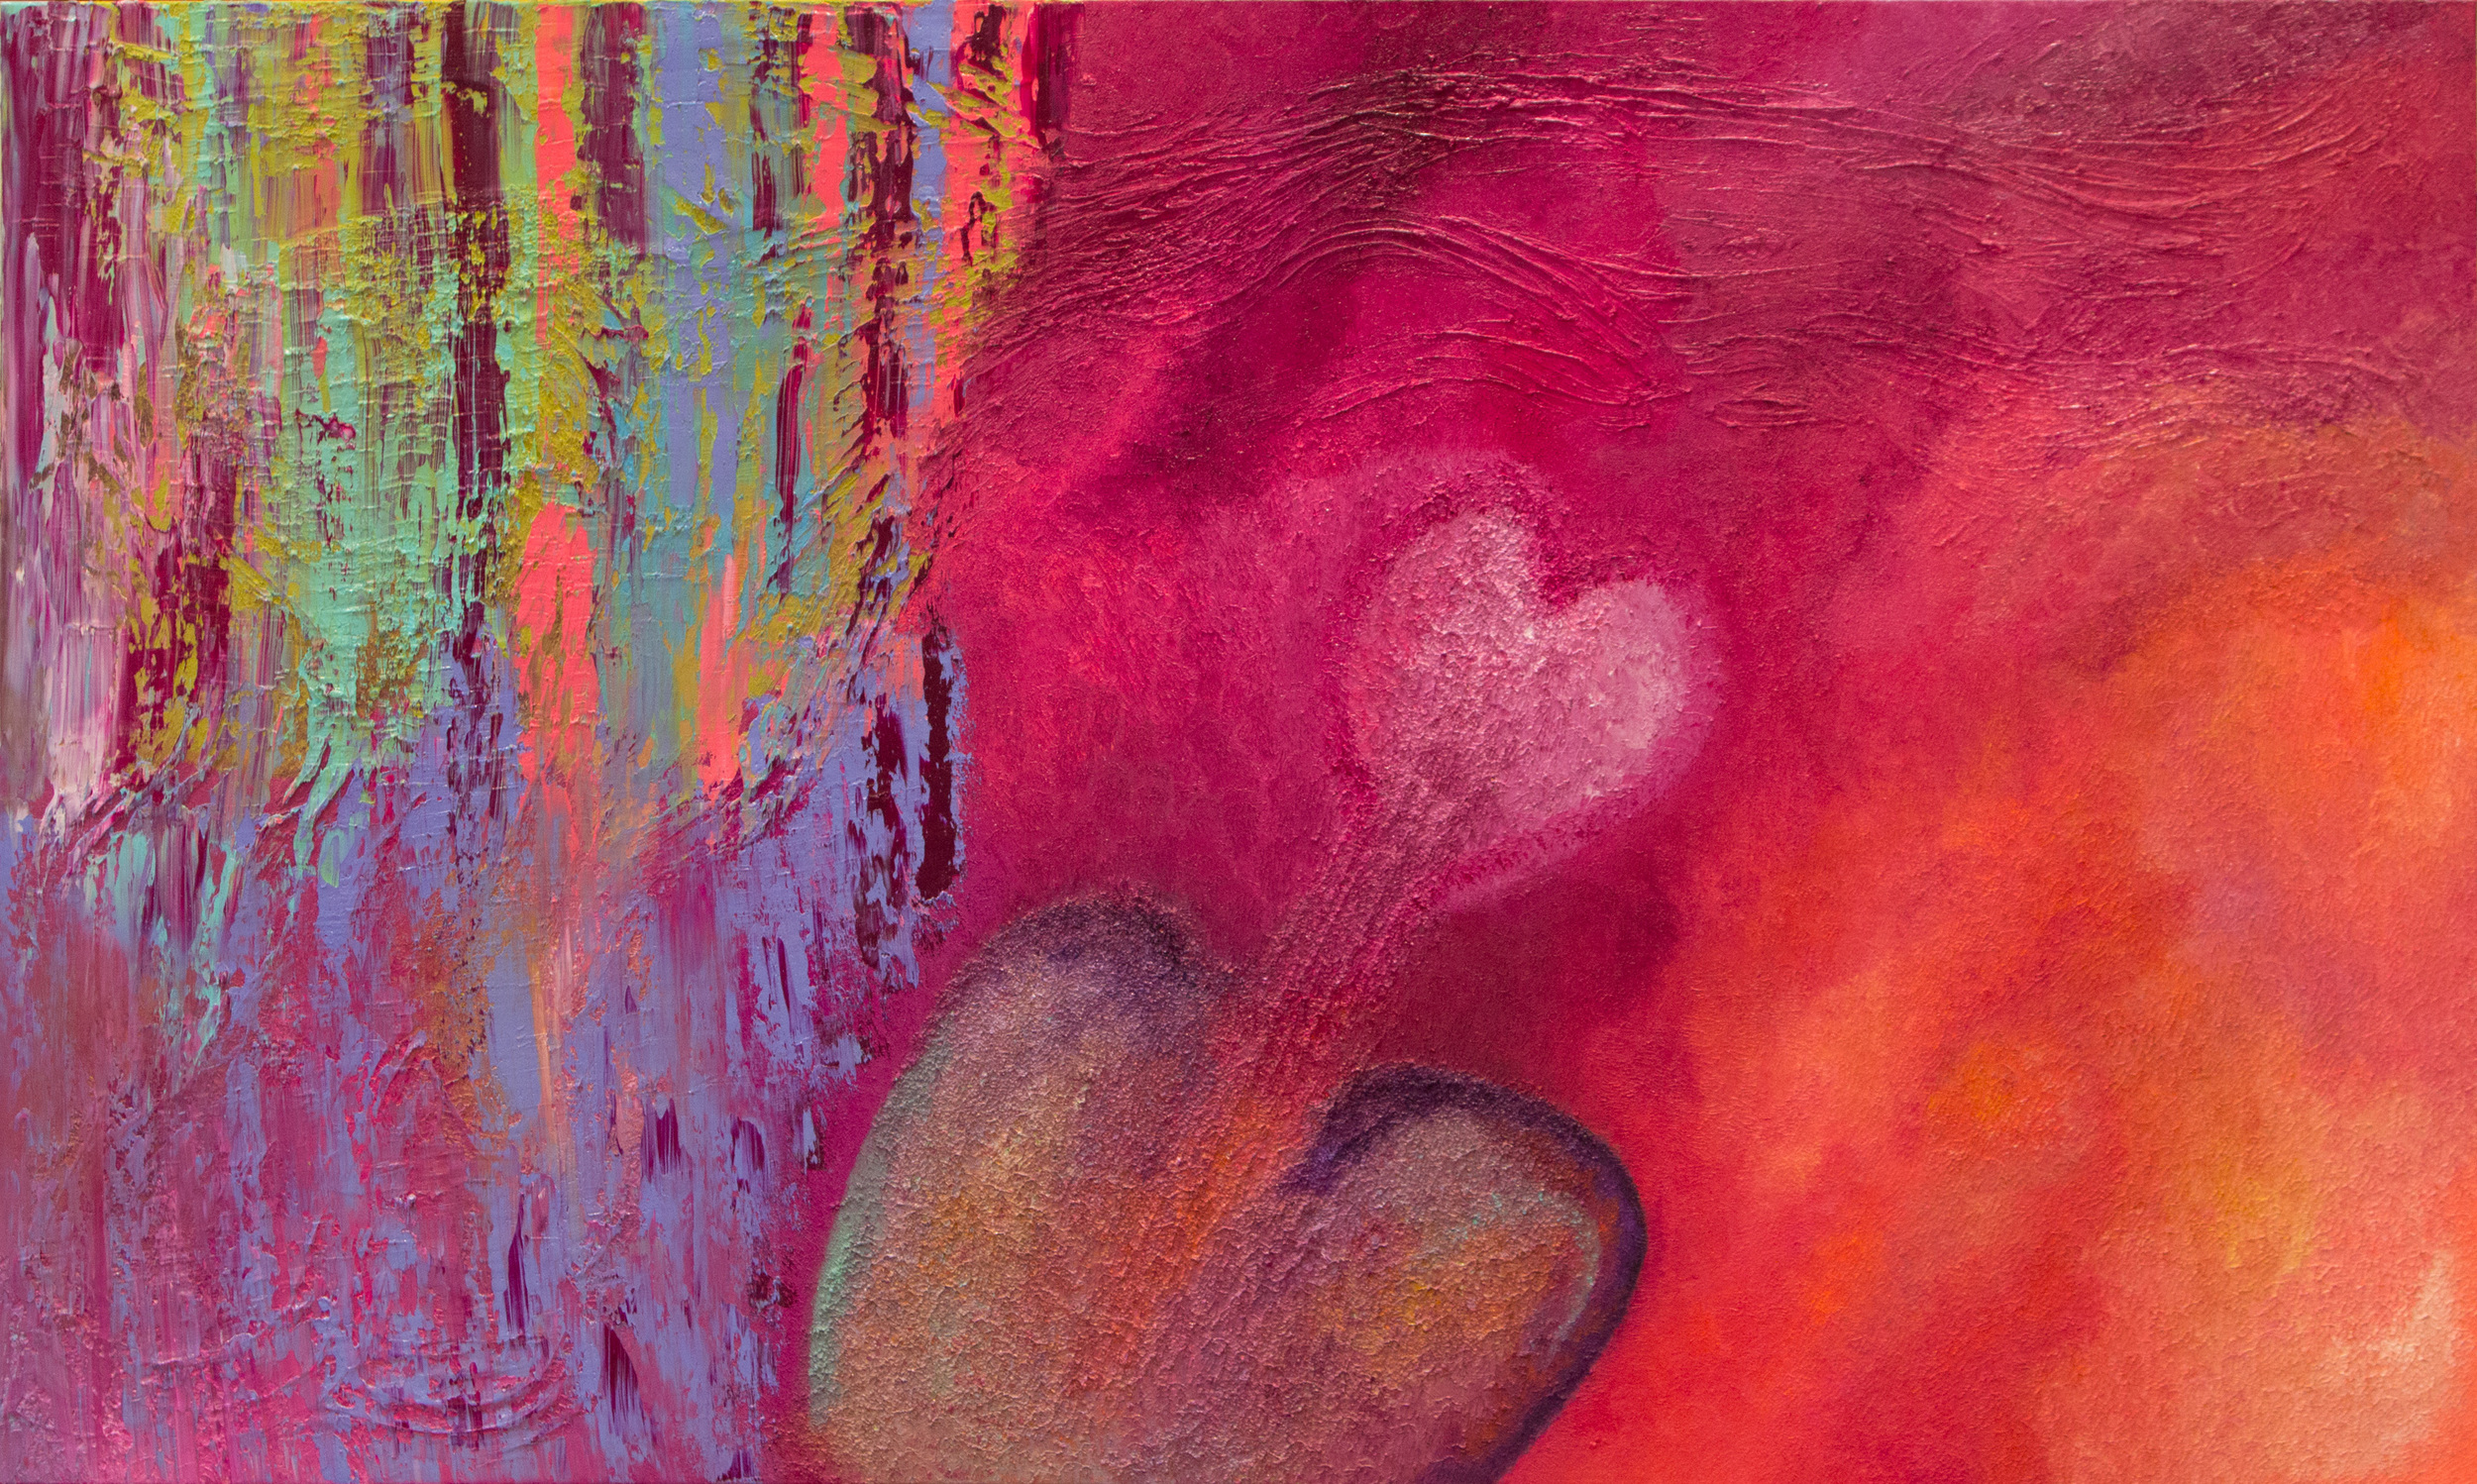 "Digging for Love    36"" x 60"" Oil on Canvas with Mixed Media      This romantic piece reflects the beating heart and its journey through magical portals of love inspired adventures.  Digging for love symbolizes the determination of seeking a self nurturing and fulfilling path in connecting and listening to the wisdom of the inner heart."